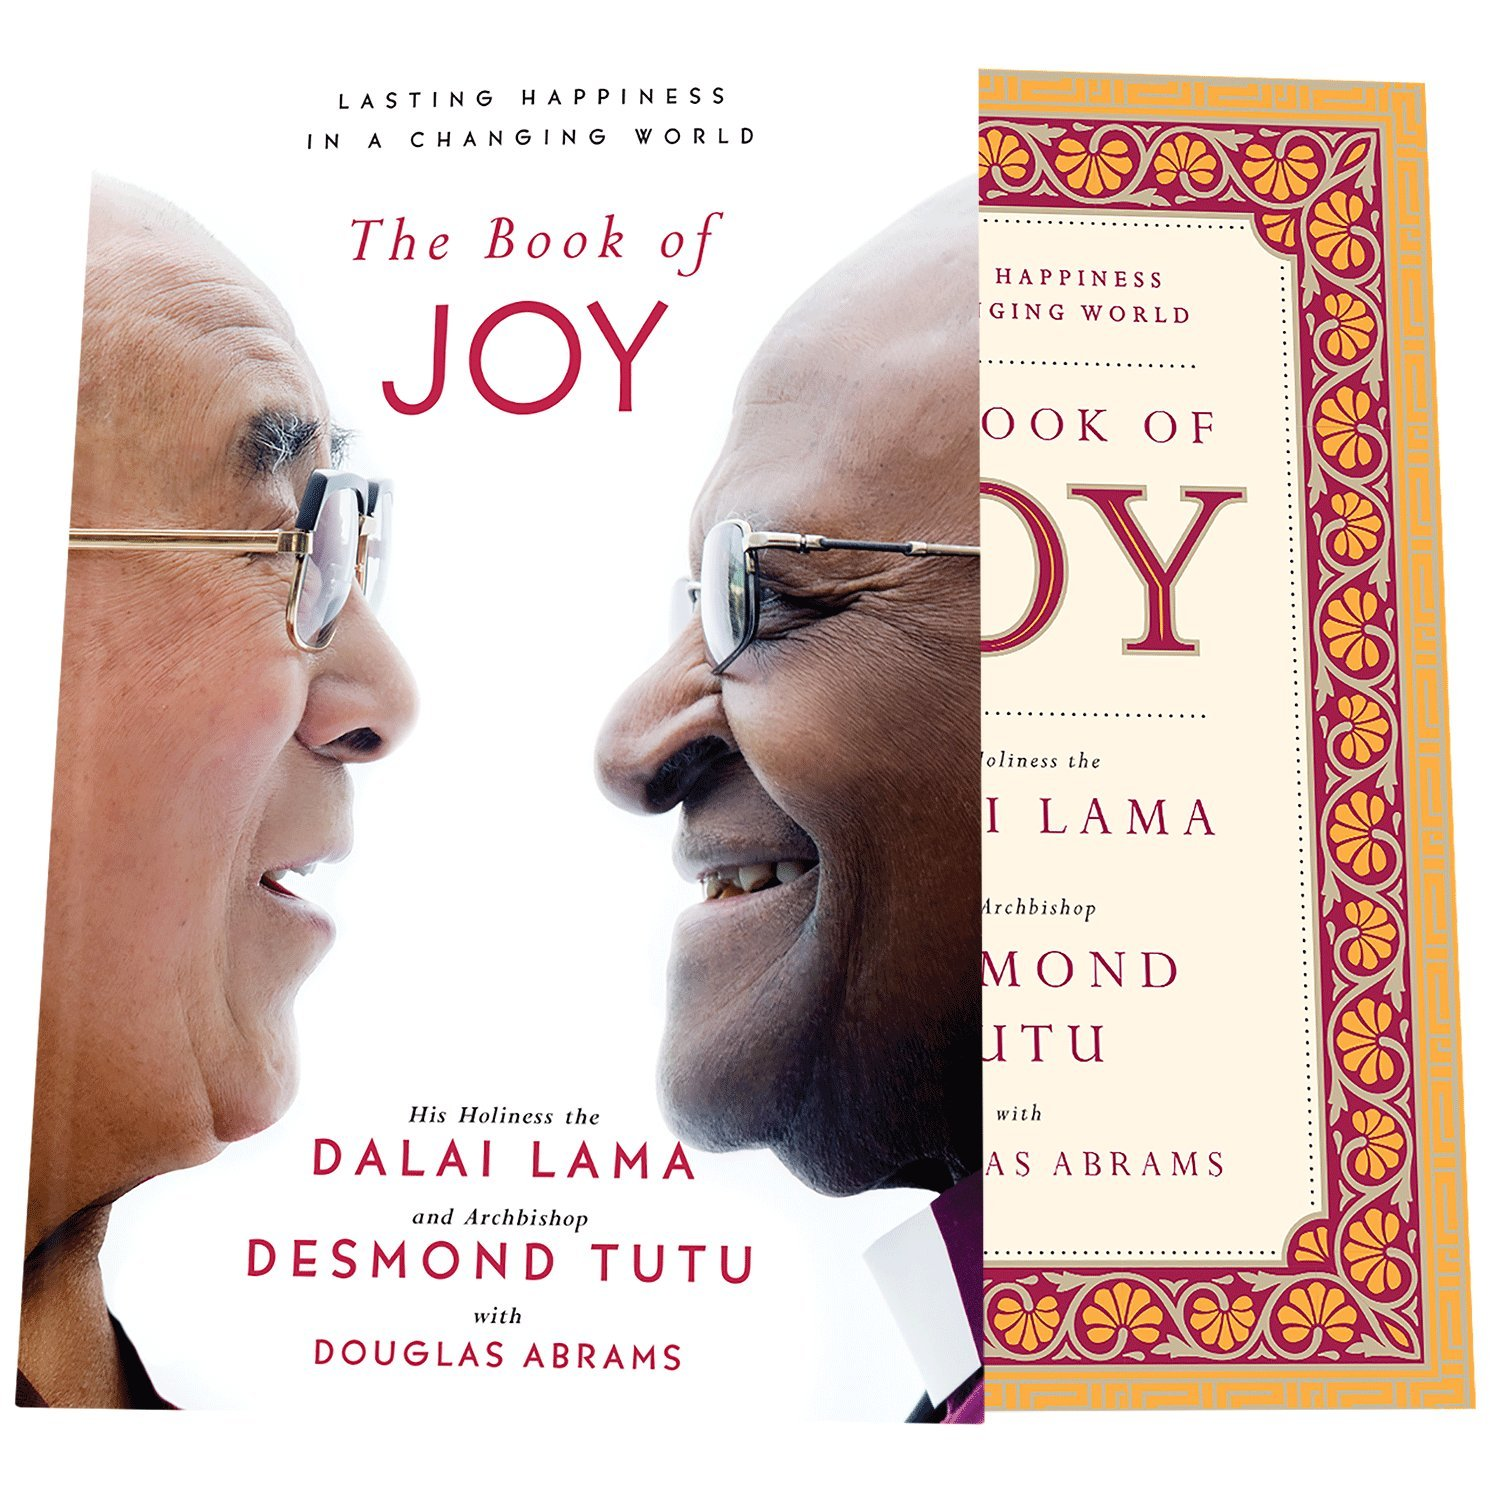 Amazon the book of joy lasting happiness in a changing world amazon the book of joy lasting happiness in a changing world 9780399185045 dalai lama desmond tutu douglas carlton abrams books fandeluxe Gallery